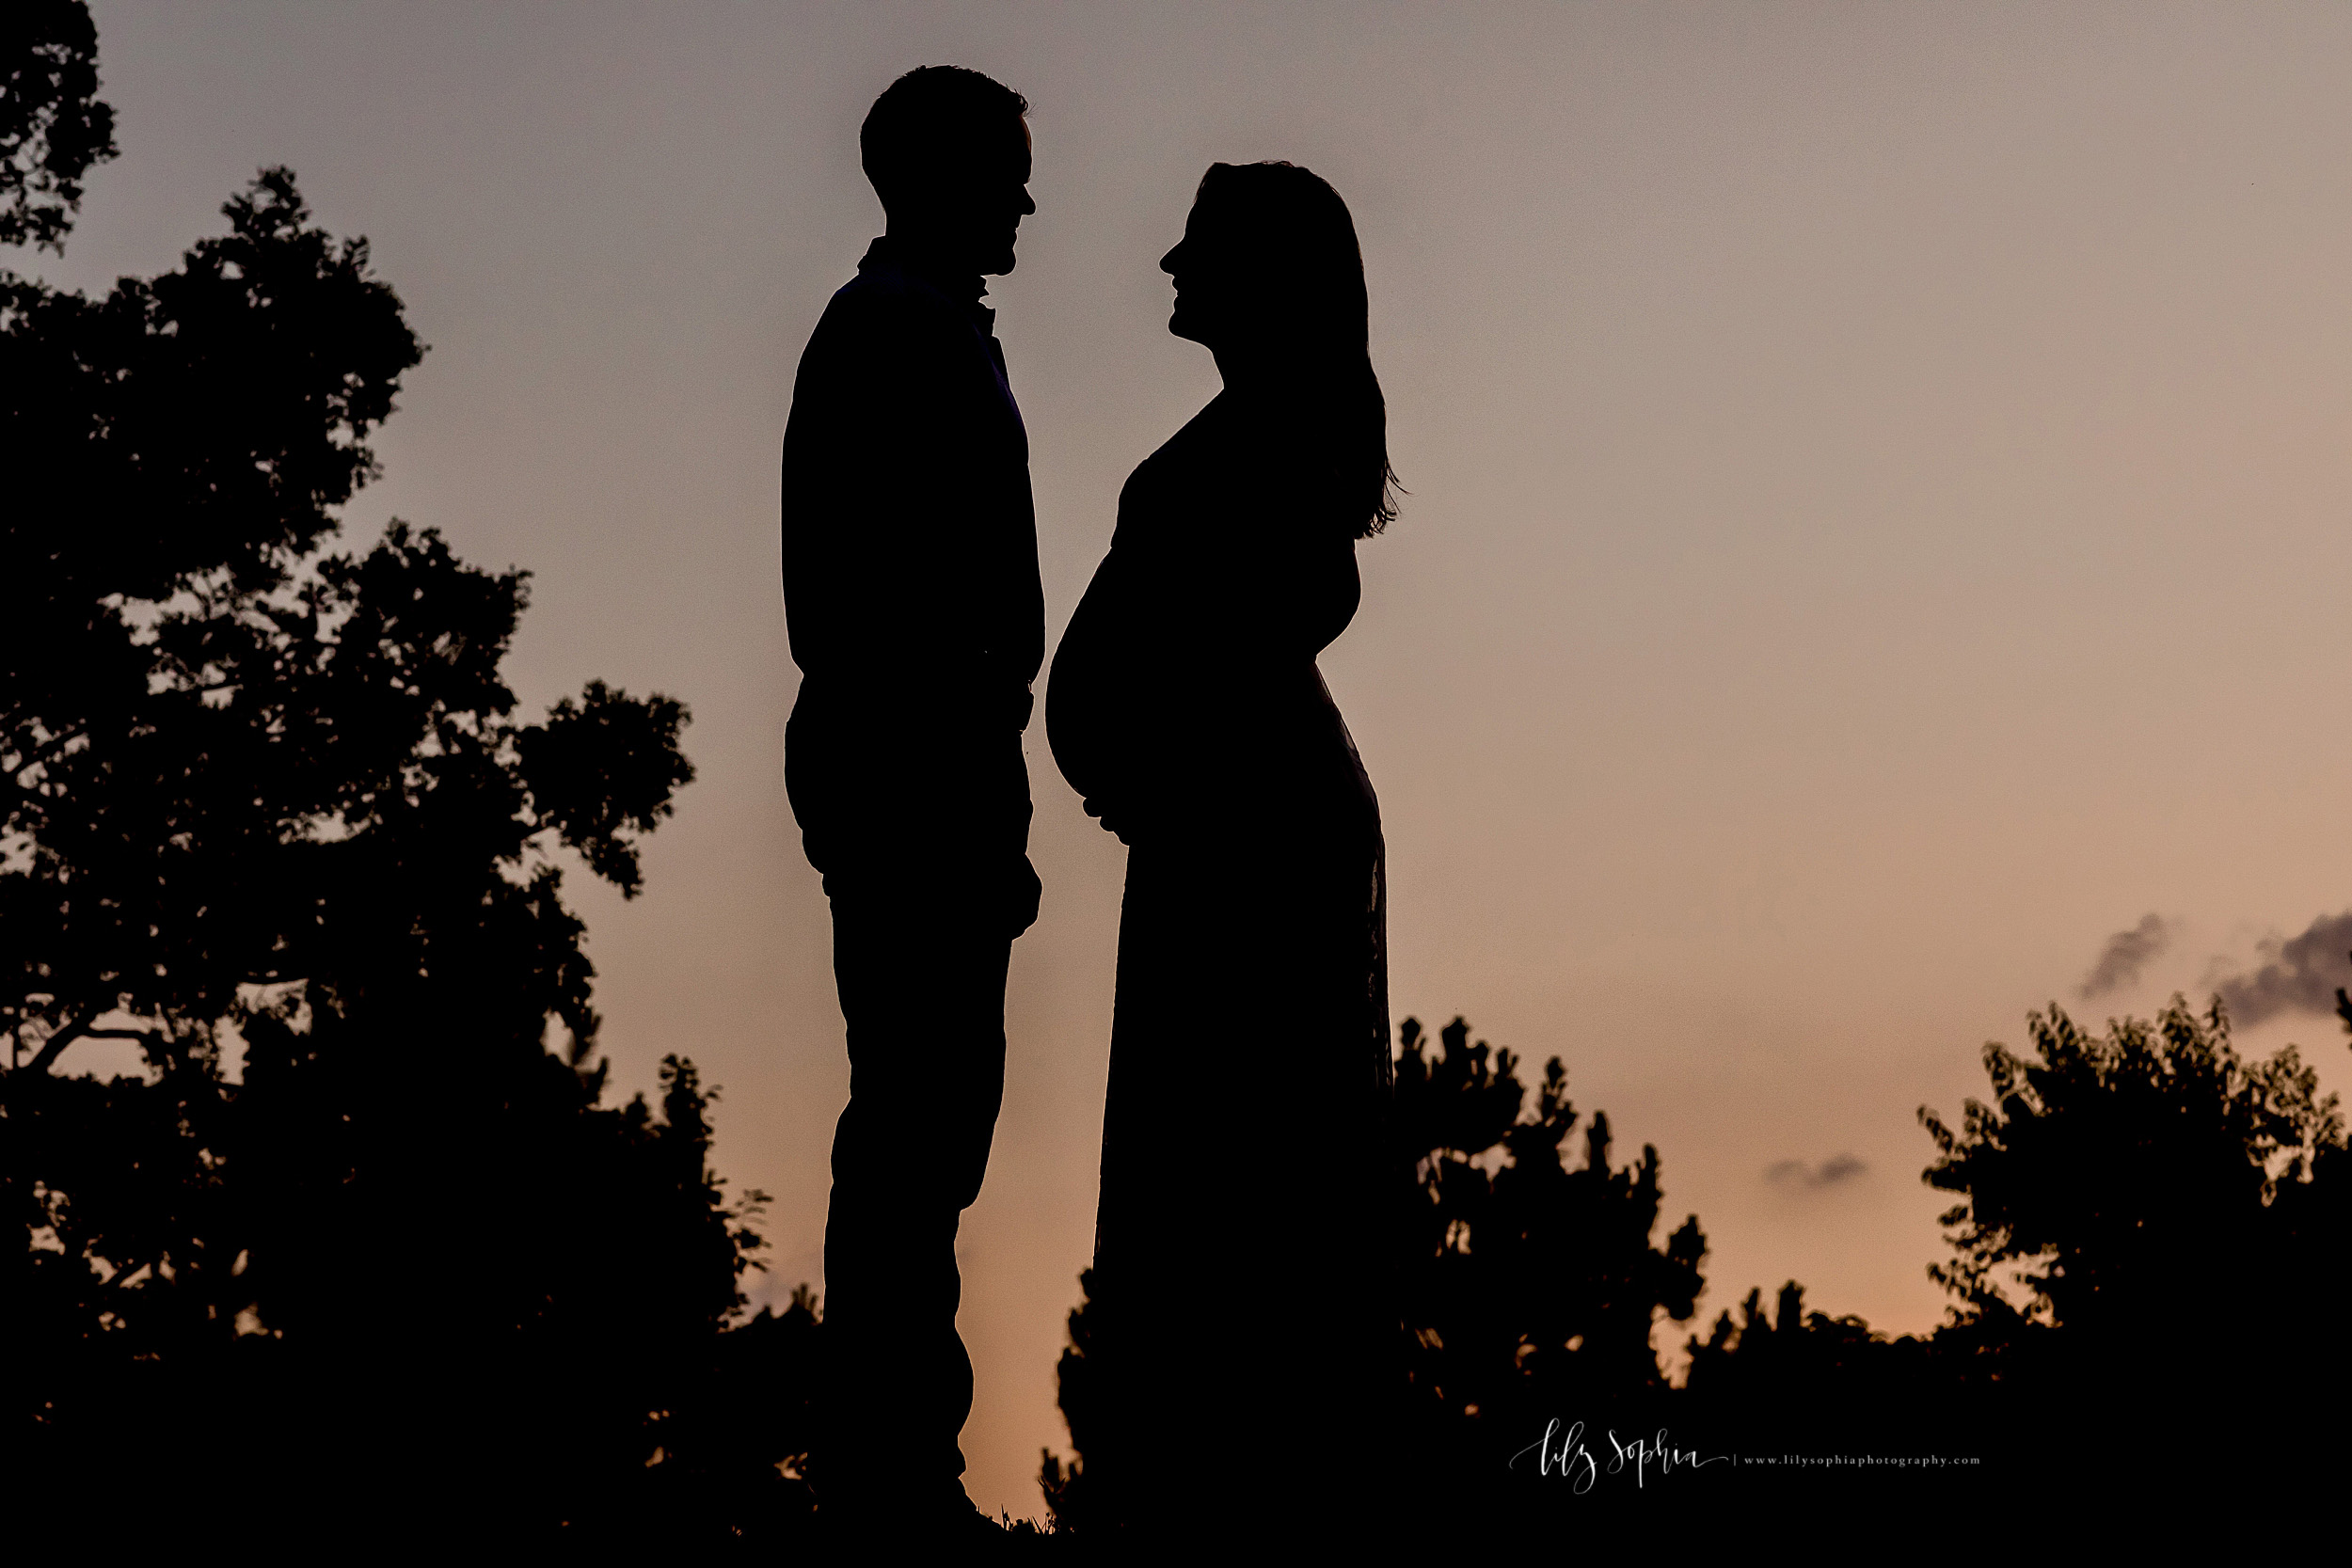 Silhouette maternity photo taken by Lily Sophia Photography at sunset in an Atlanta park.